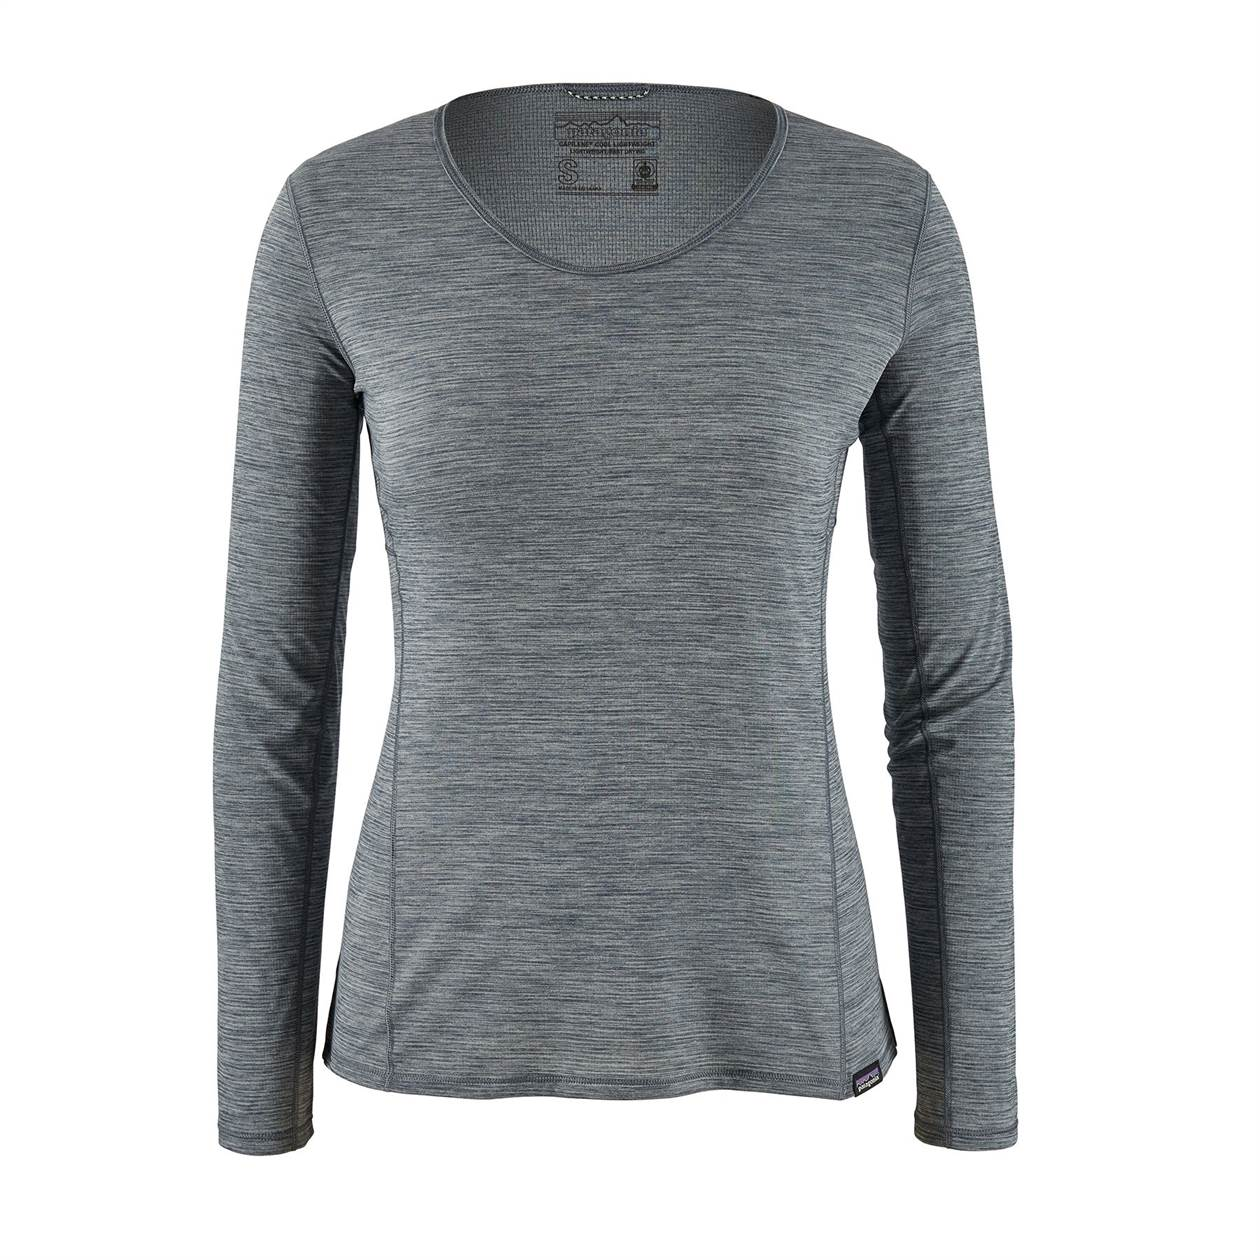 Cap Cool Lightweight Shirt Long Sleeve - Women's